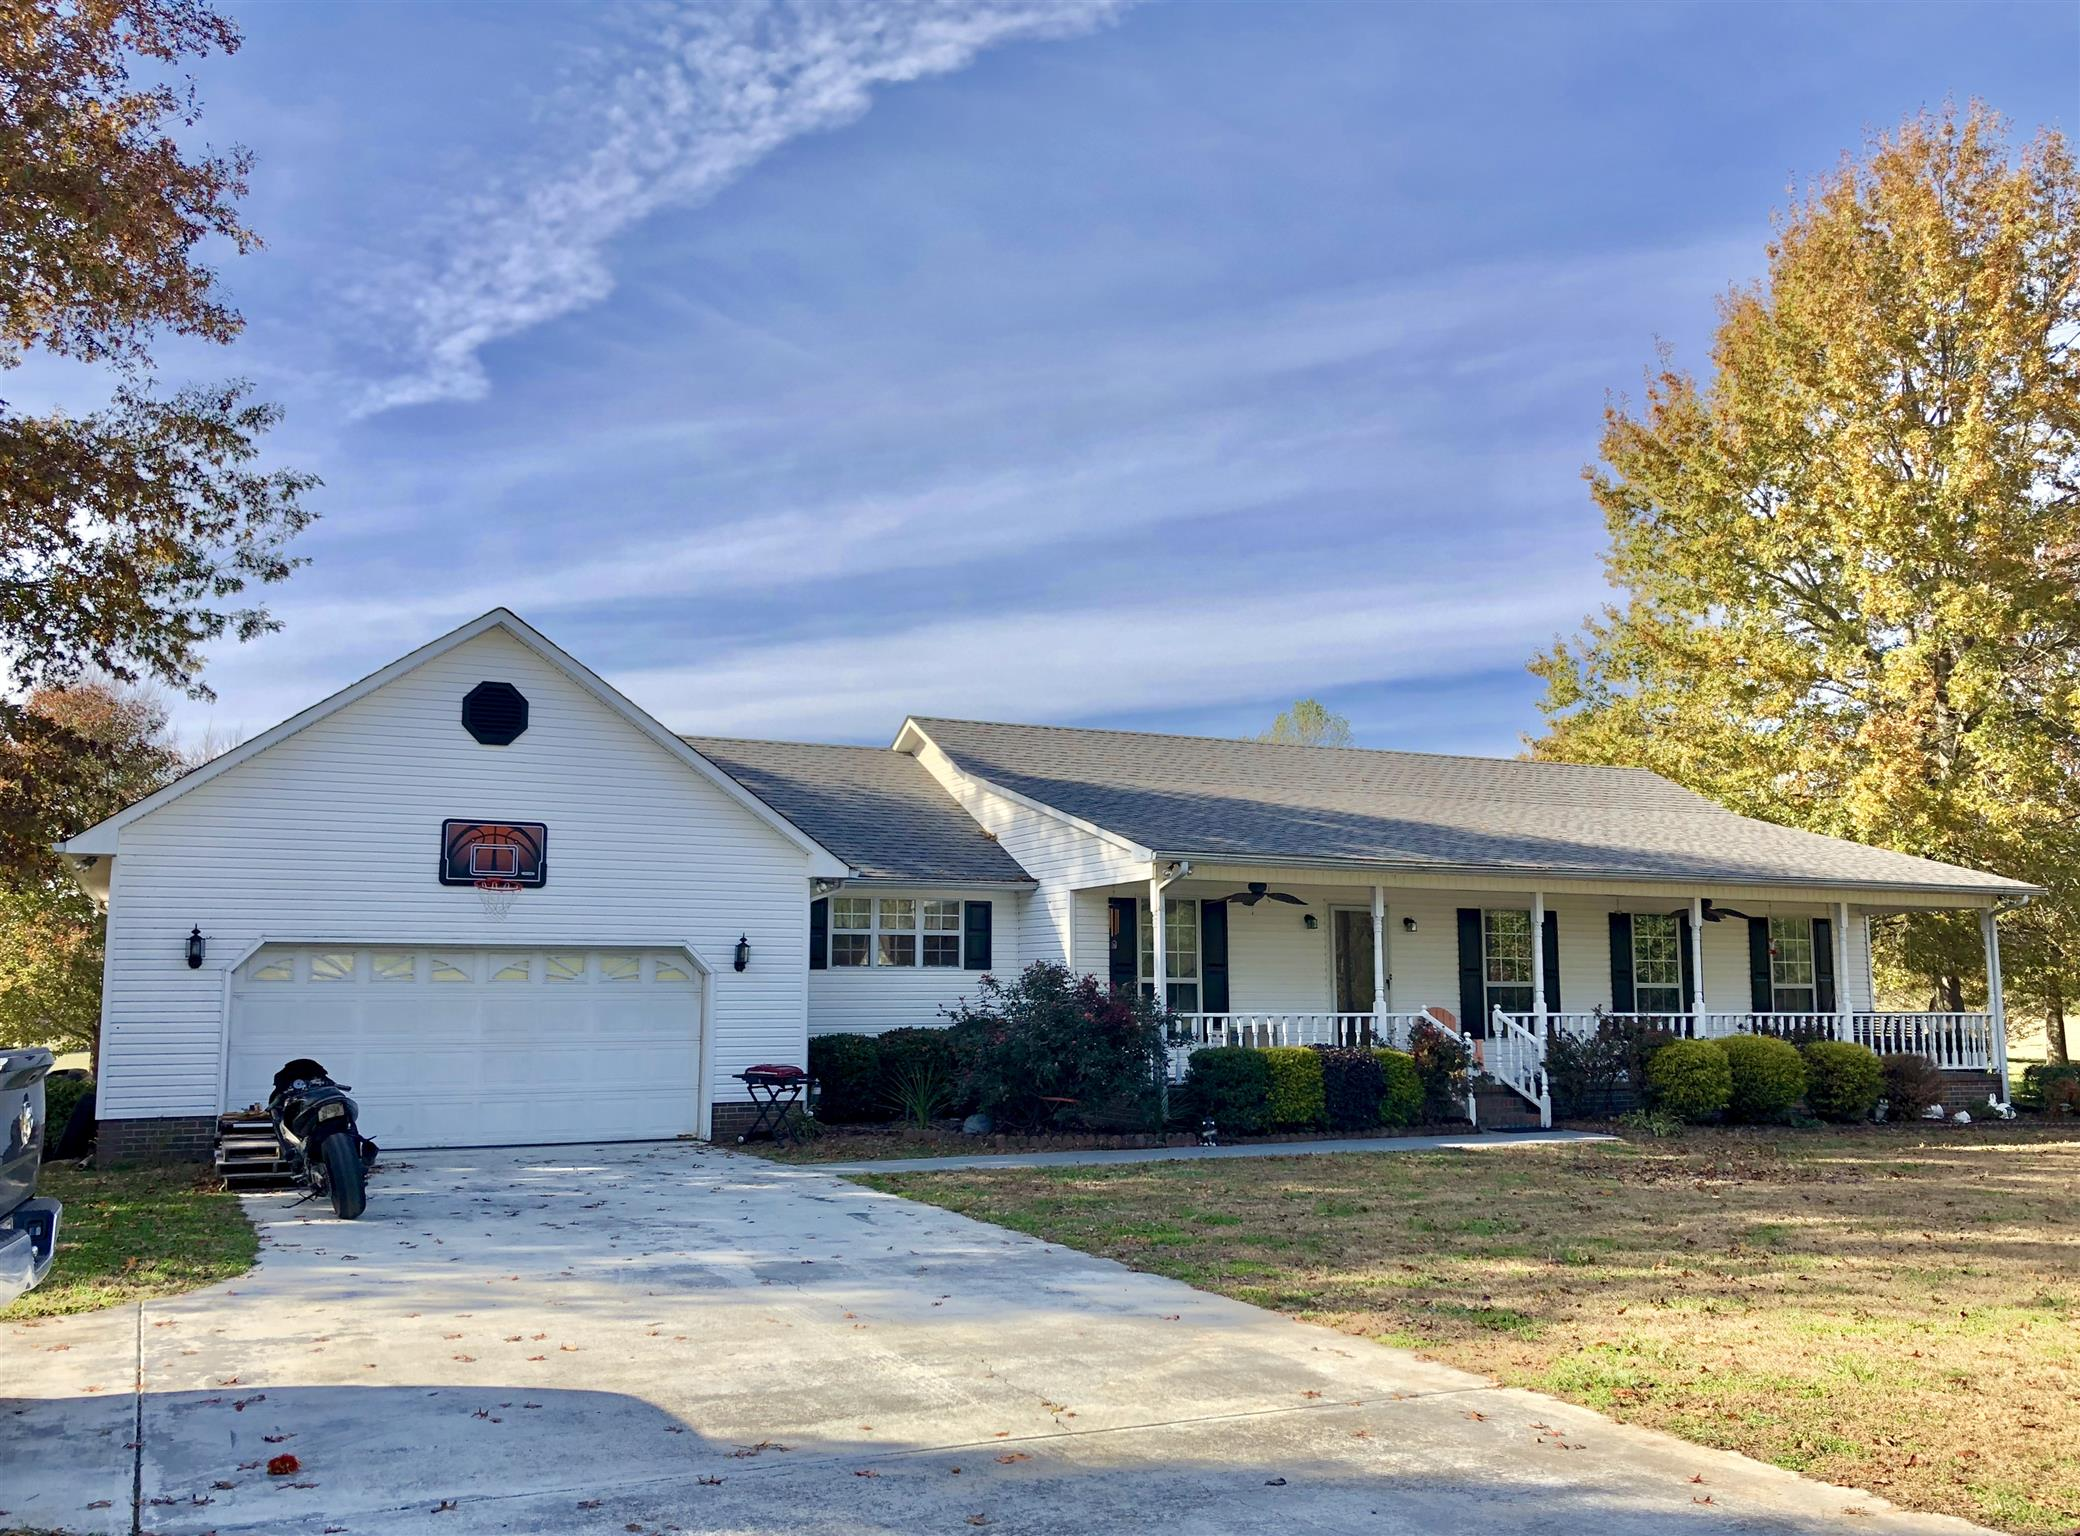 9 Oconnor Ln, Loretto, TN 38469 - Loretto, TN real estate listing